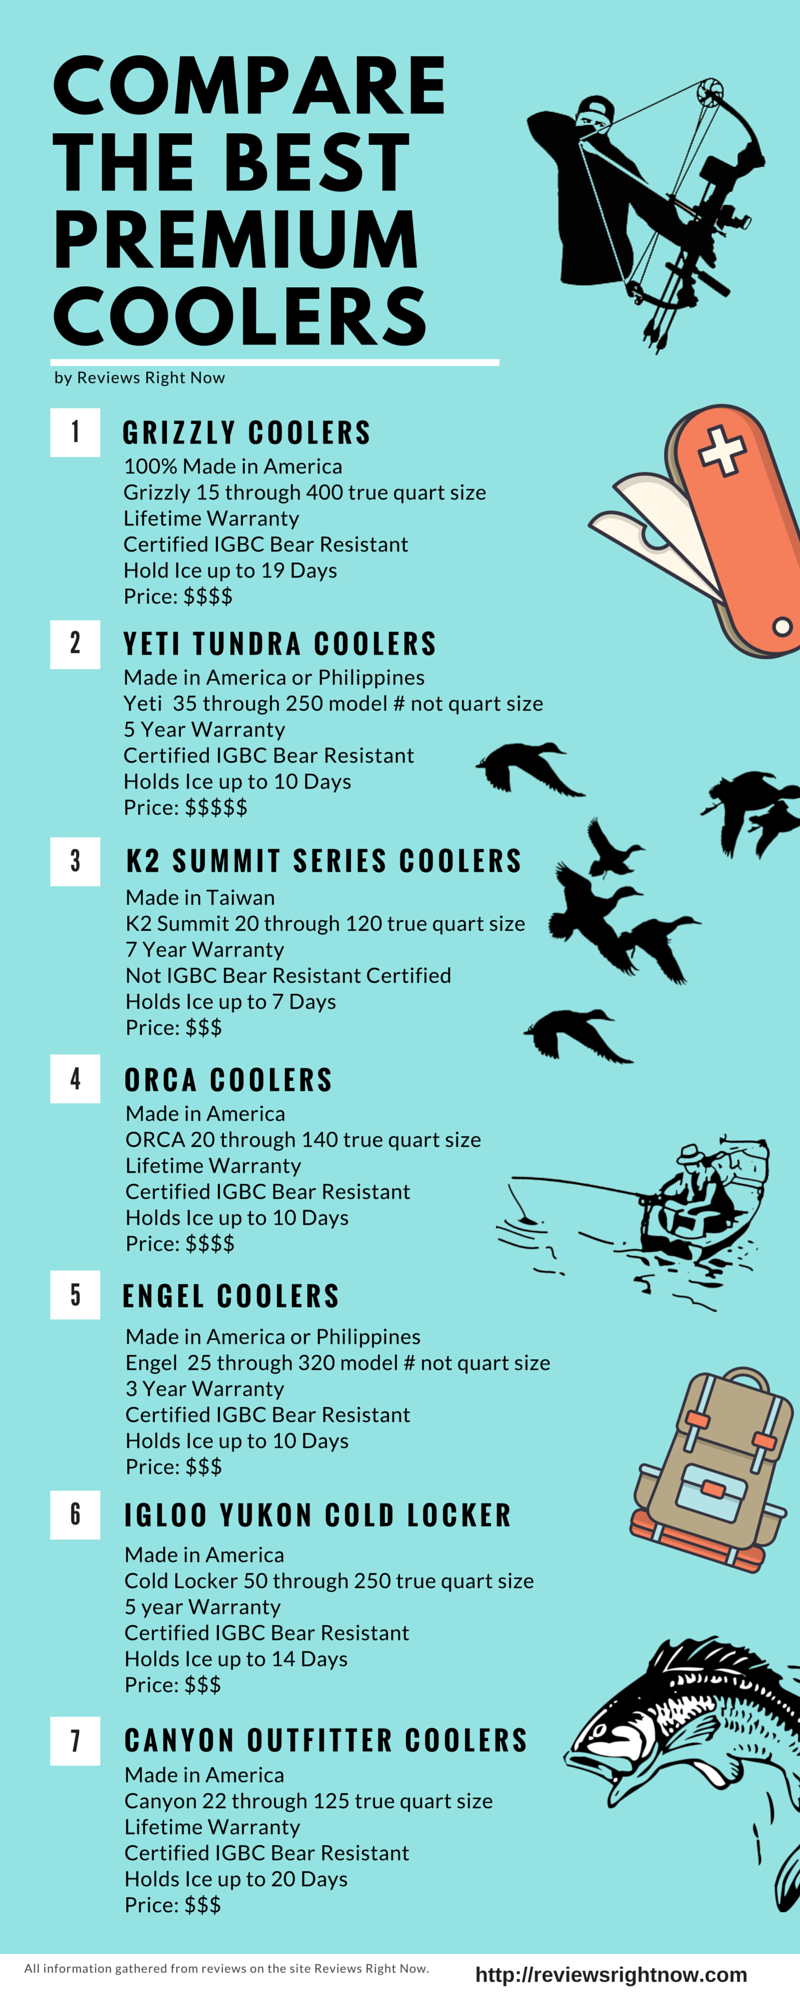 This infographic compares Yeti K2 Grizzly ORCA Engel Igloo Yukon Cold Locker and Canyon Outfitter in one place